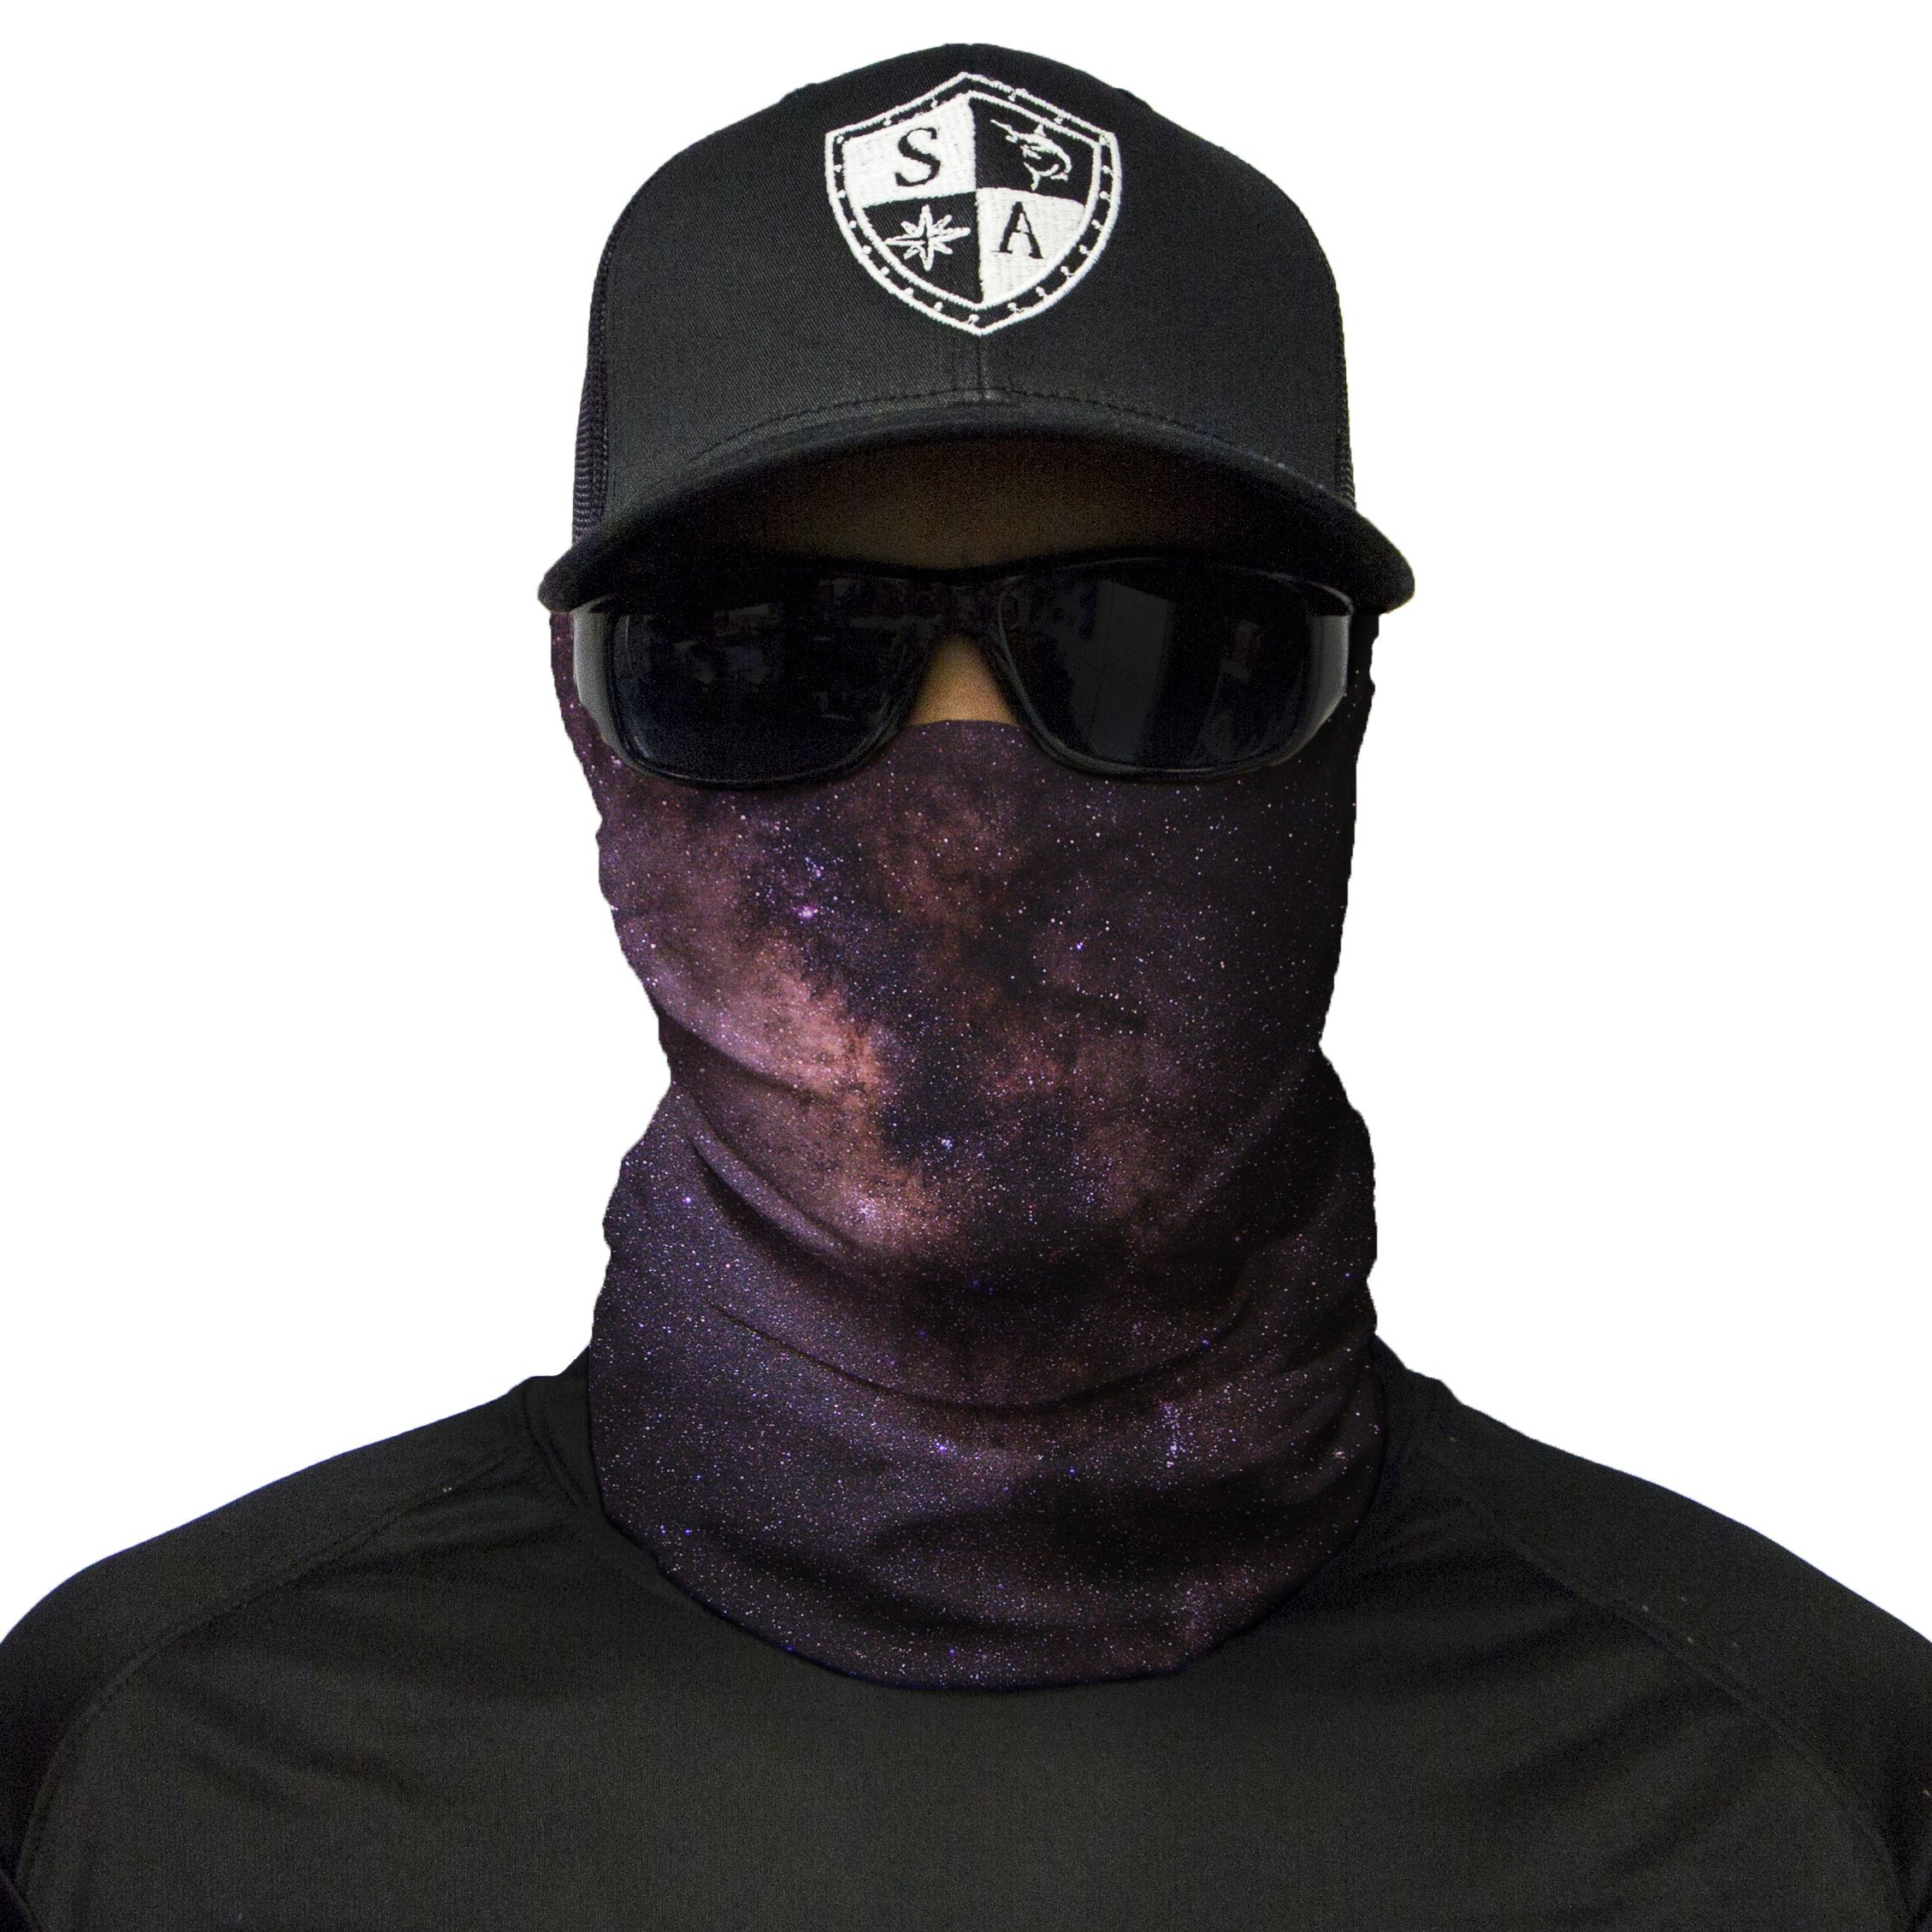 S A 1 Face Shield Cloth Face Shield, Face Shields for Men and Face Shields for Women – UV Face Shield by S A (Image #1)